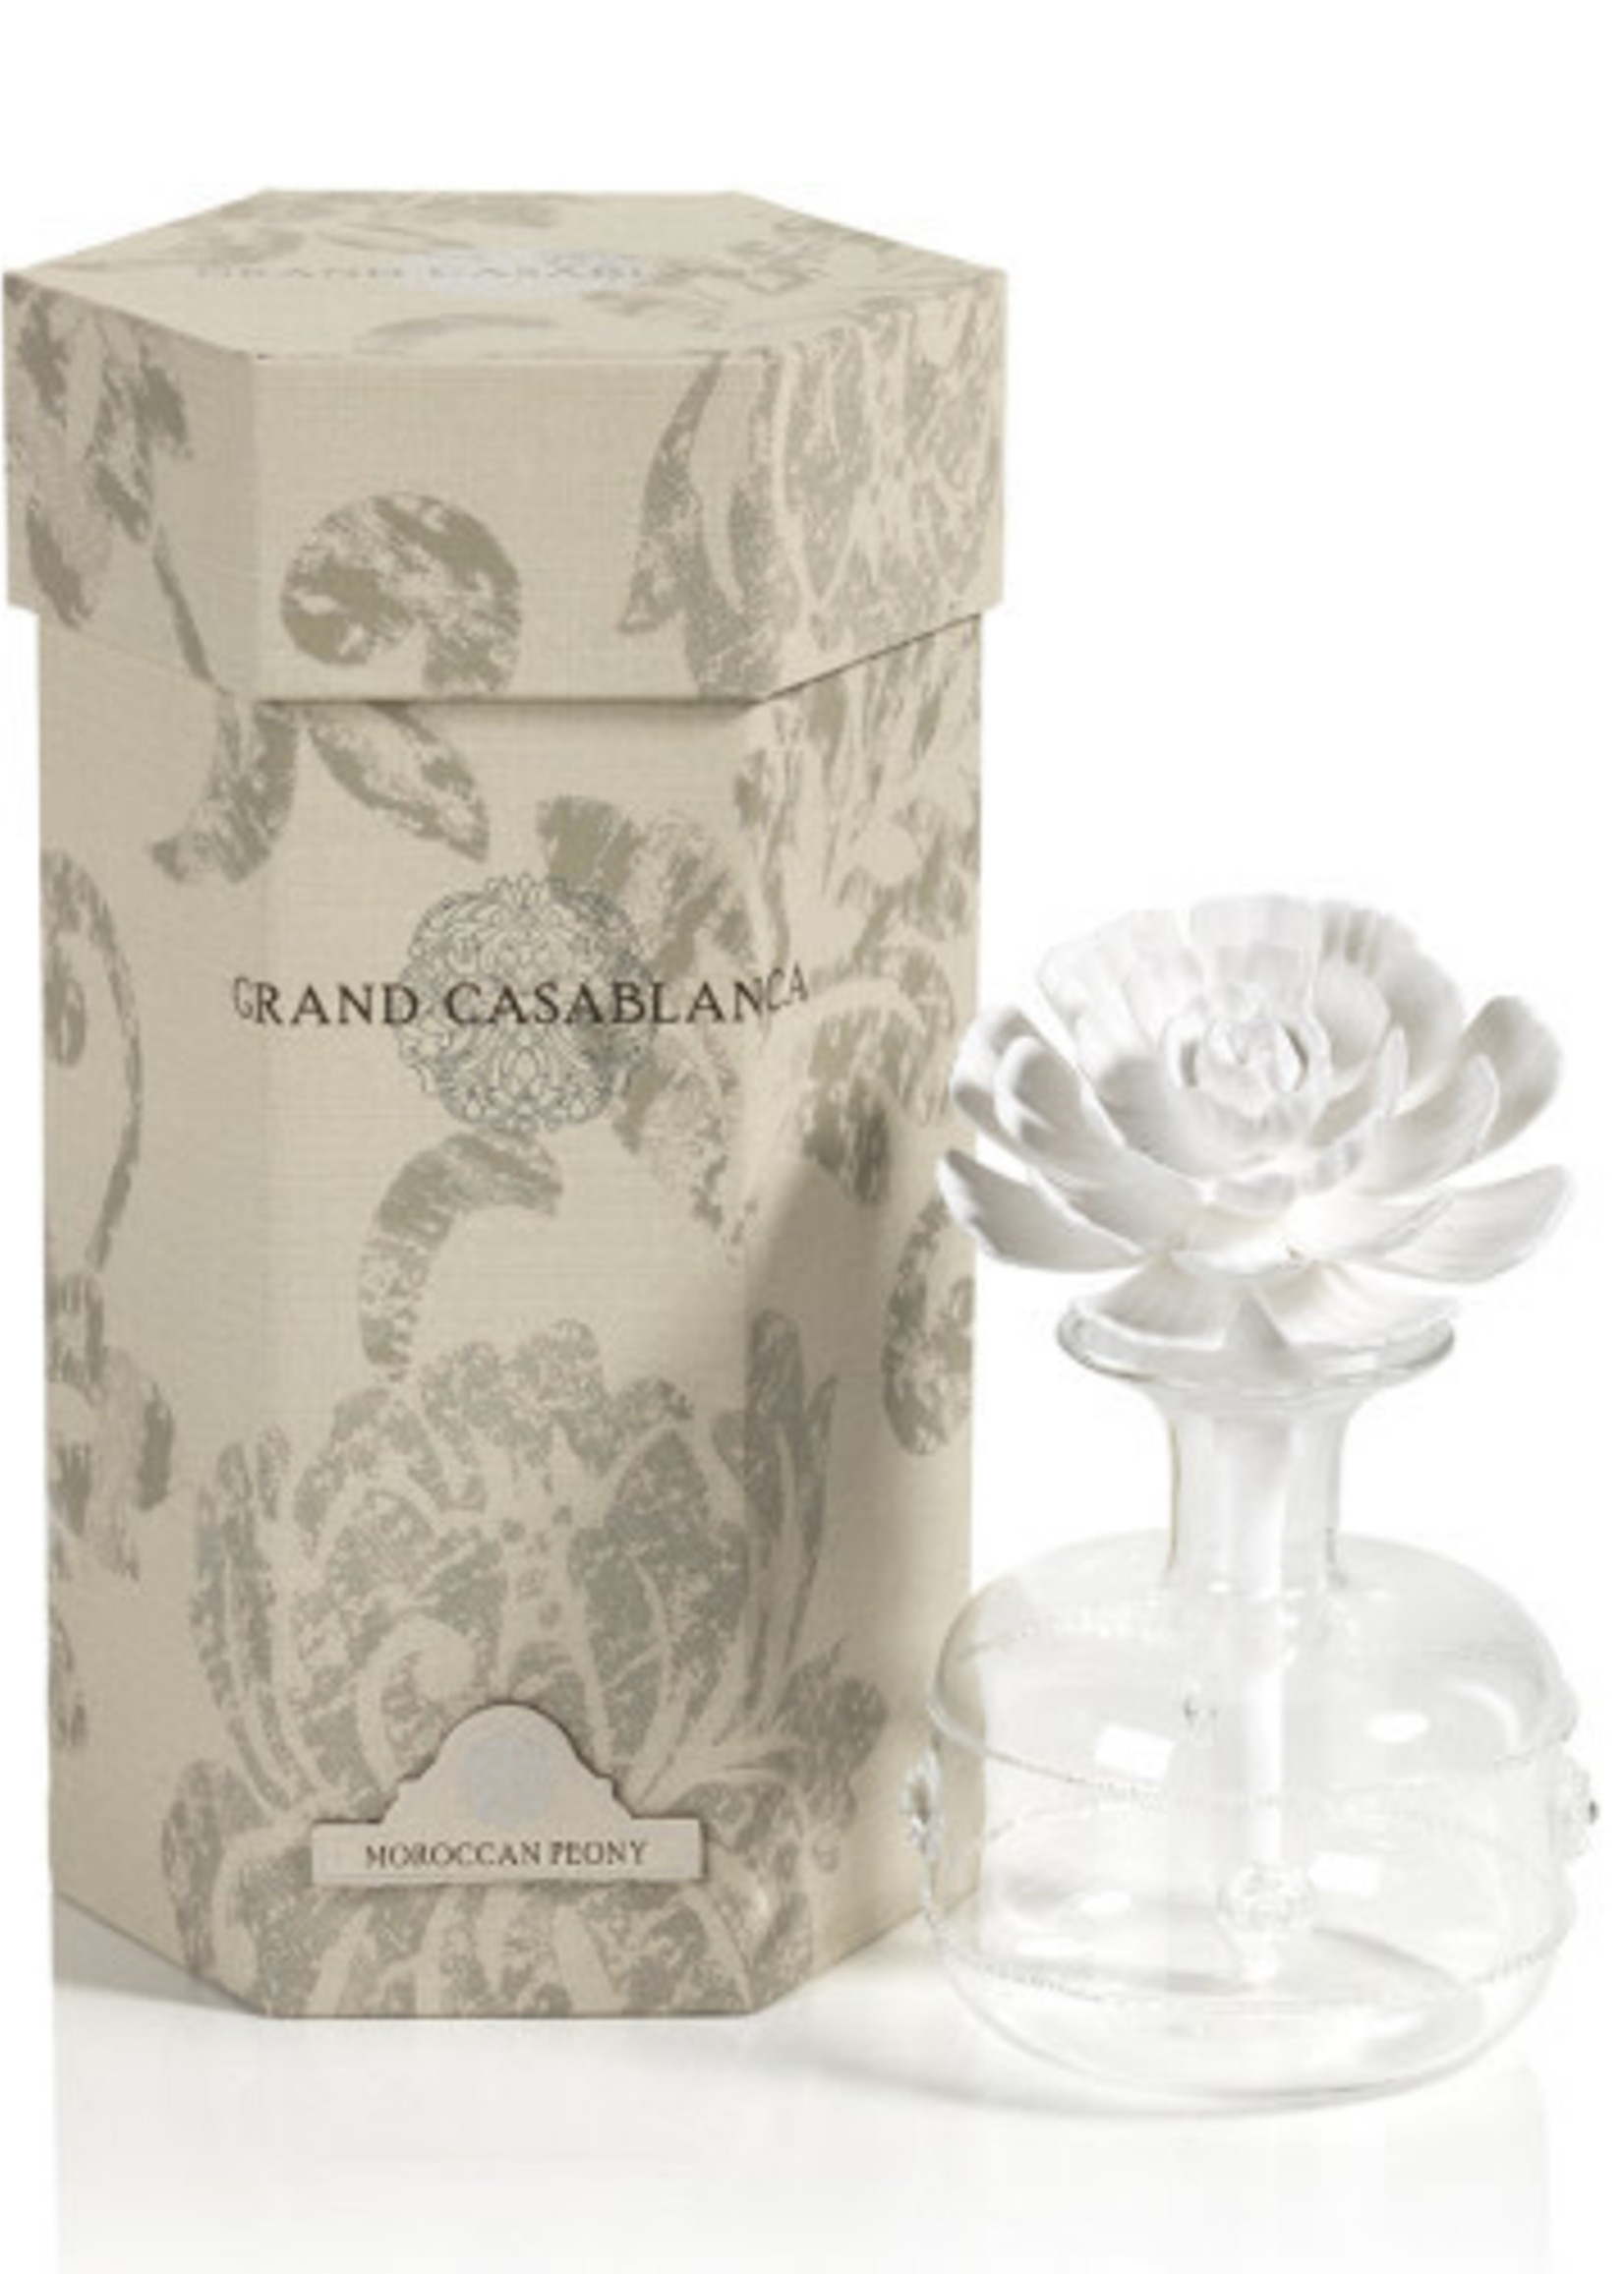 Grand Porcelain Diffuser - Moroccan Peony